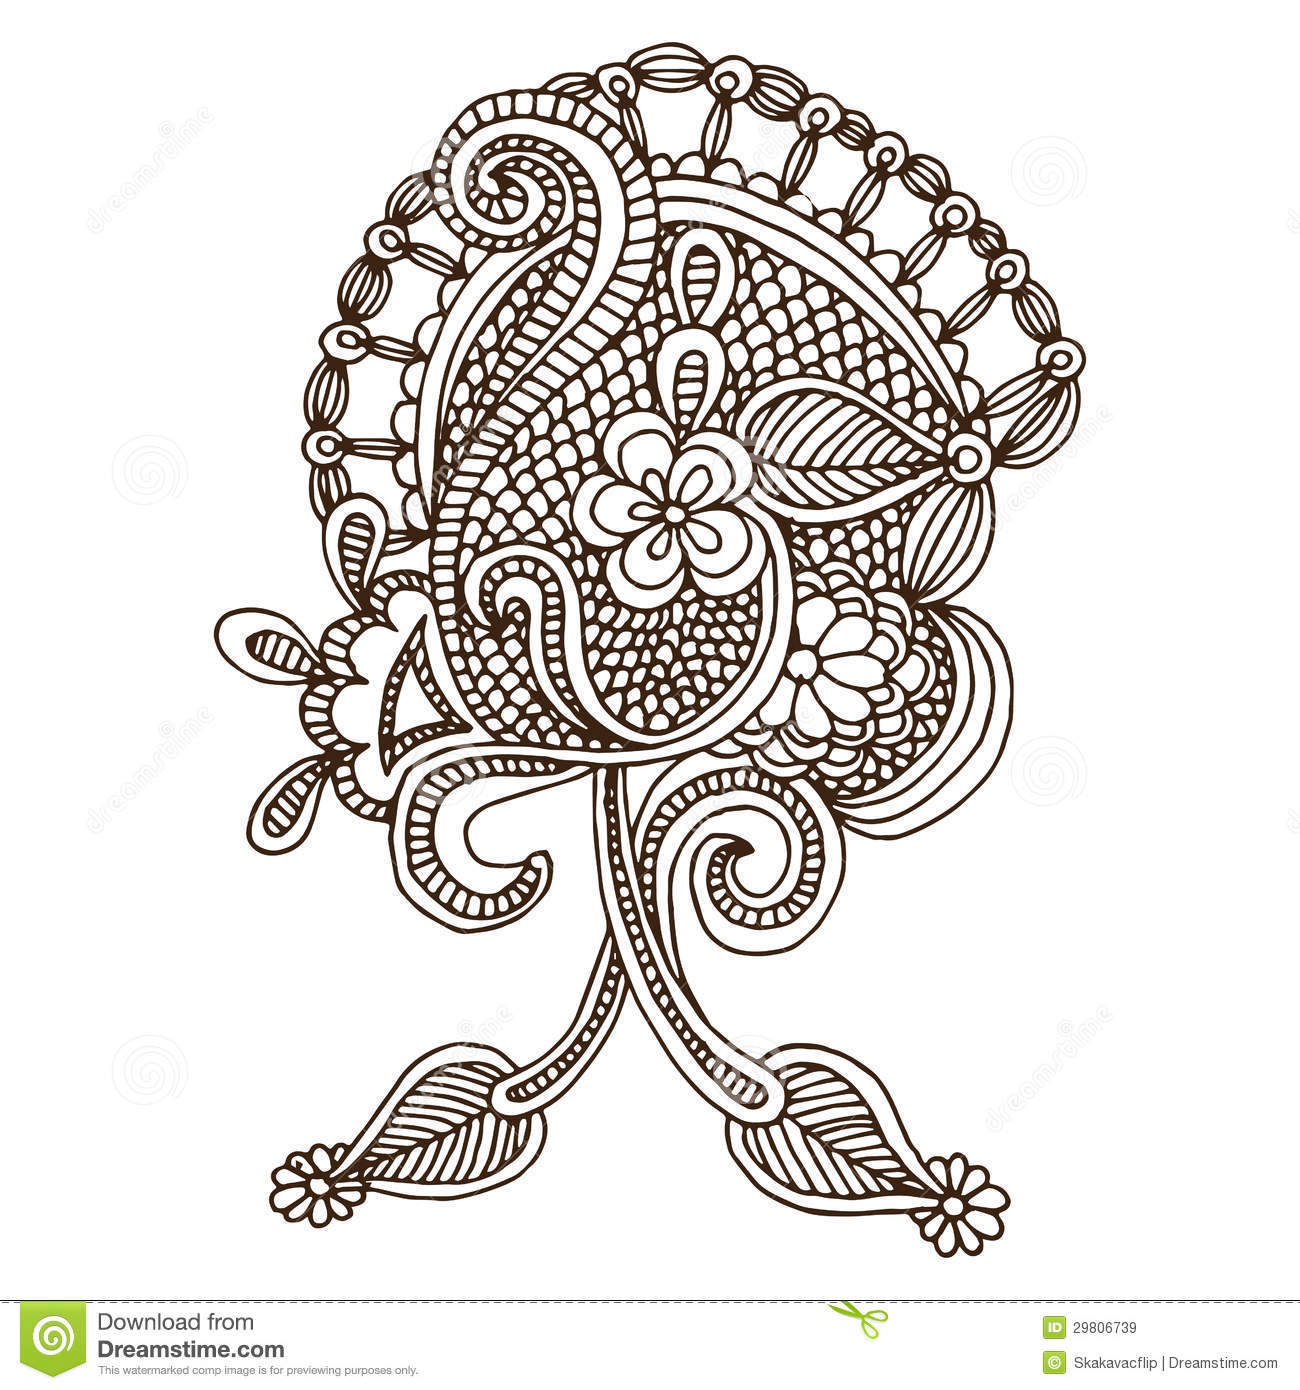 Line Art Embroidery : Neckline embroidery design stock illustration image of